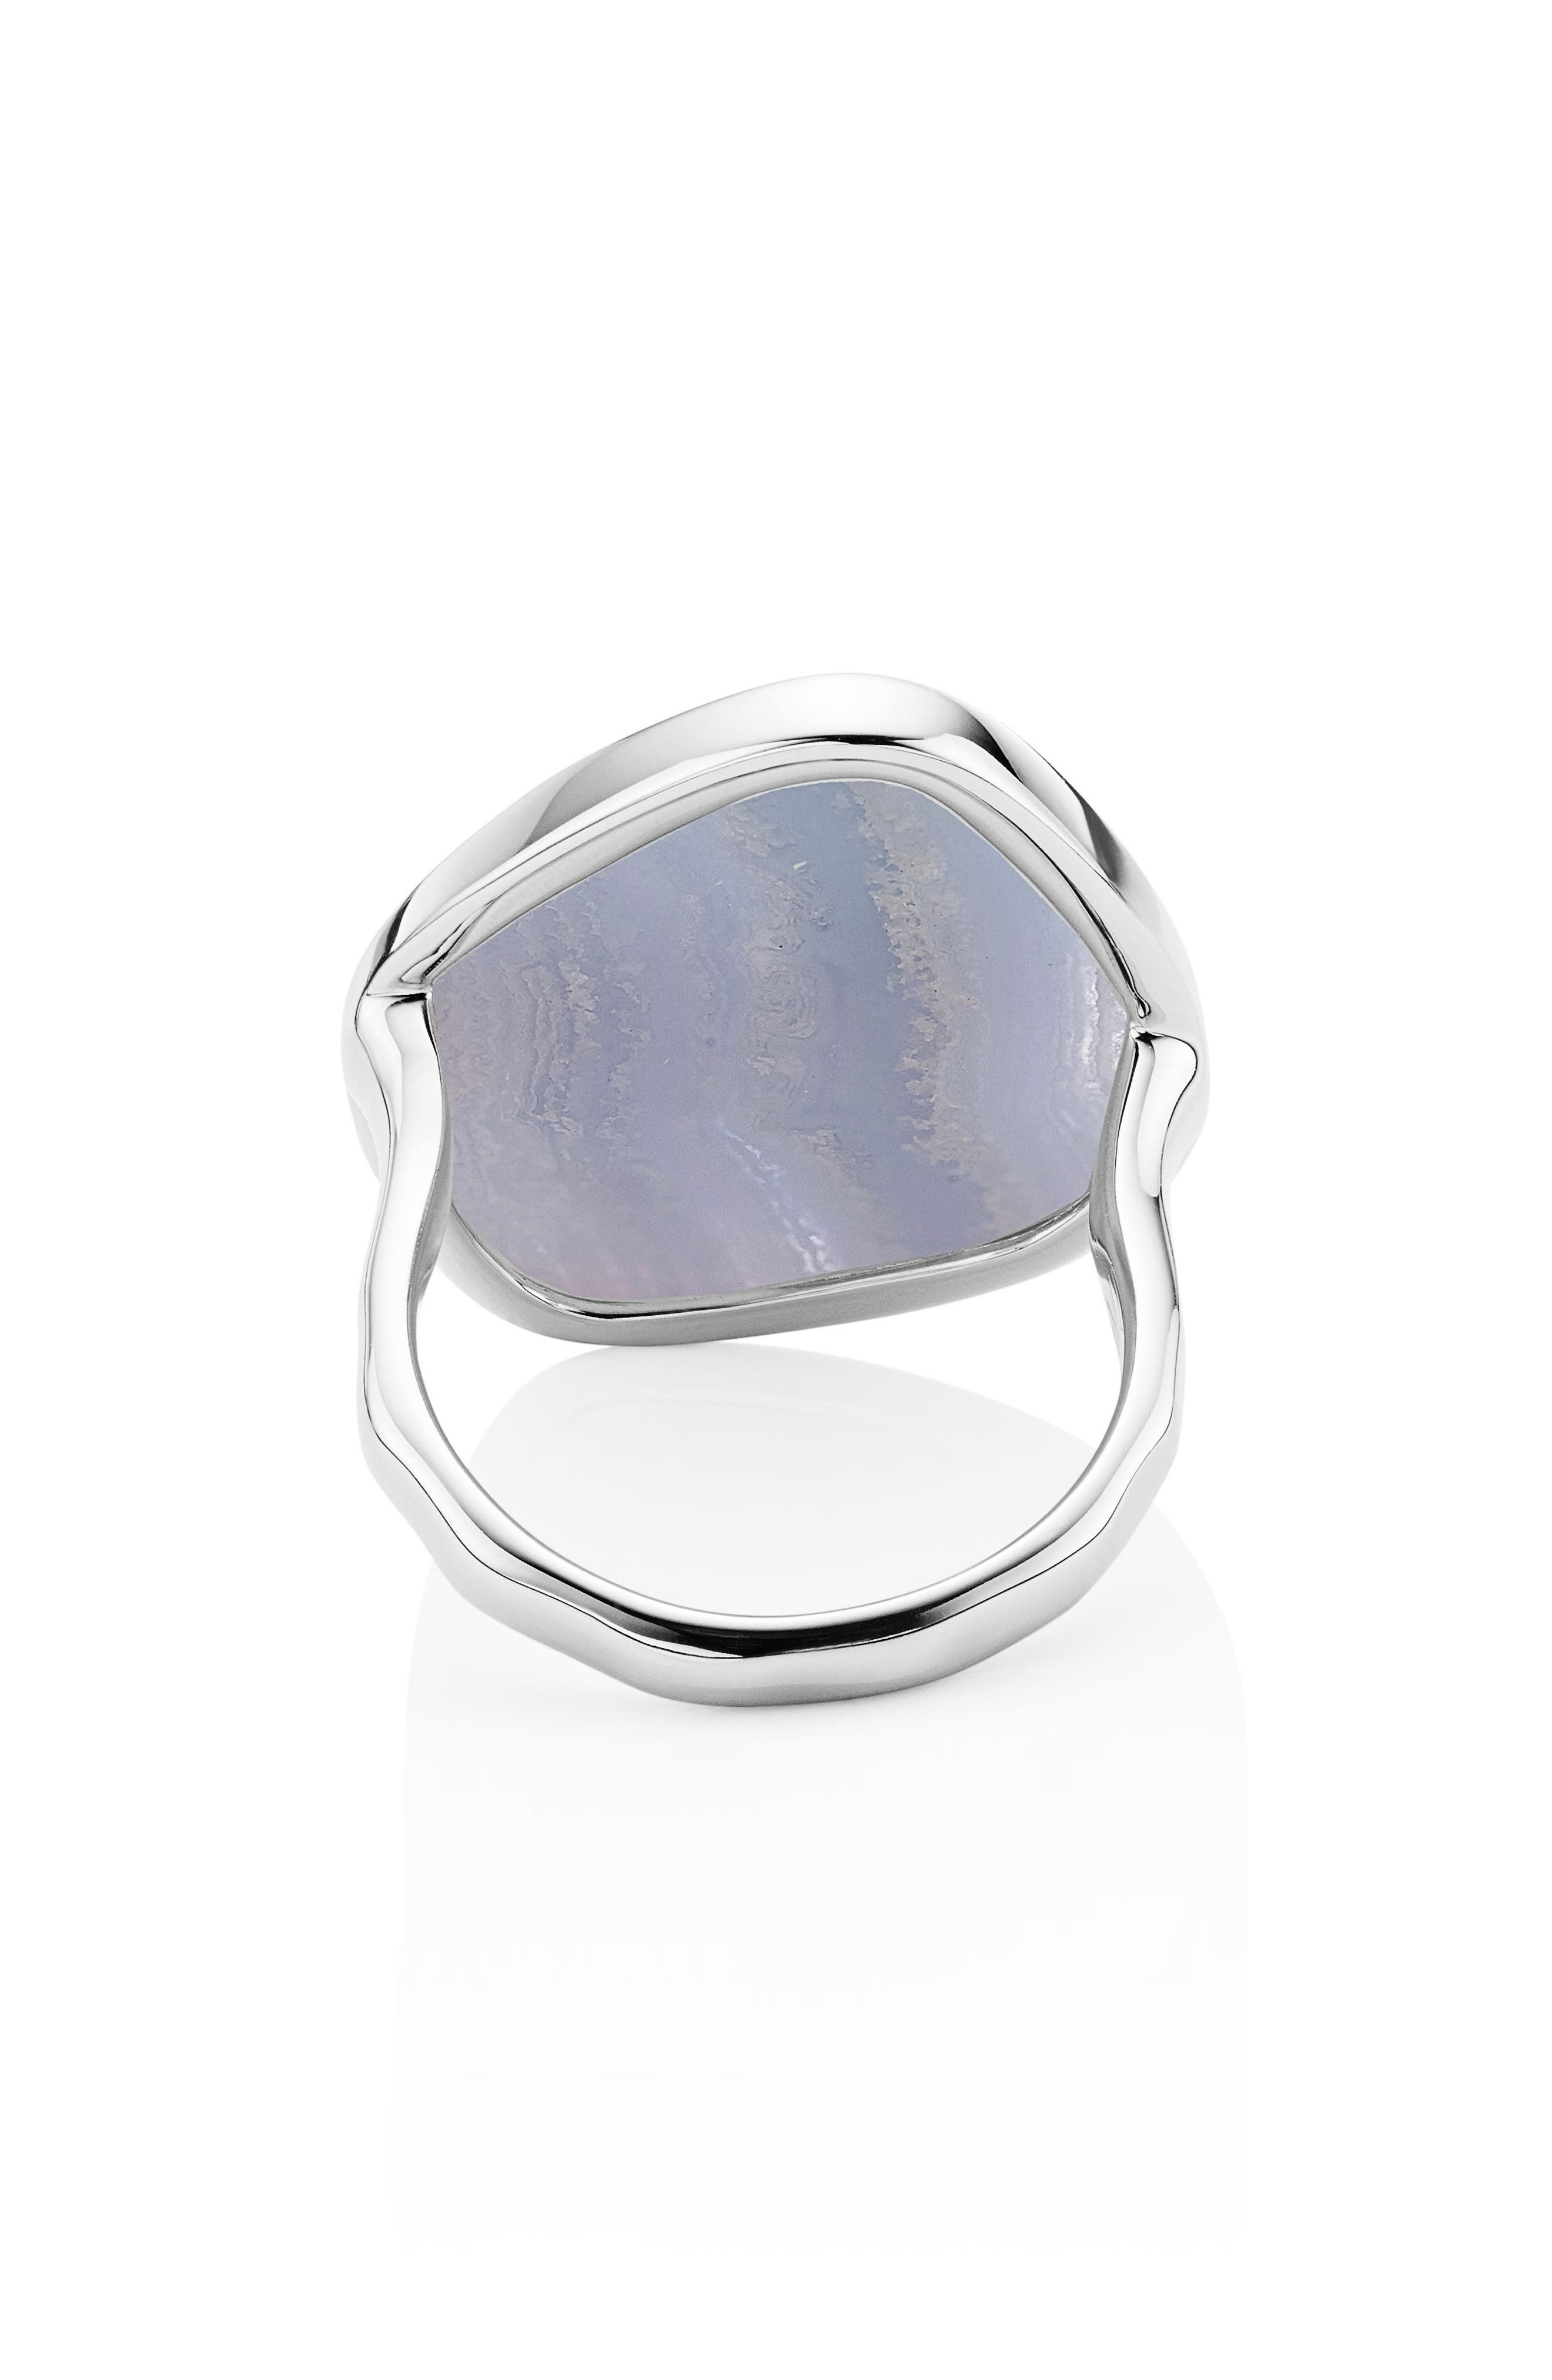 Siren Nugget Semiprecious Stone Cocktail Ring,                             Alternate thumbnail 2, color,                             040